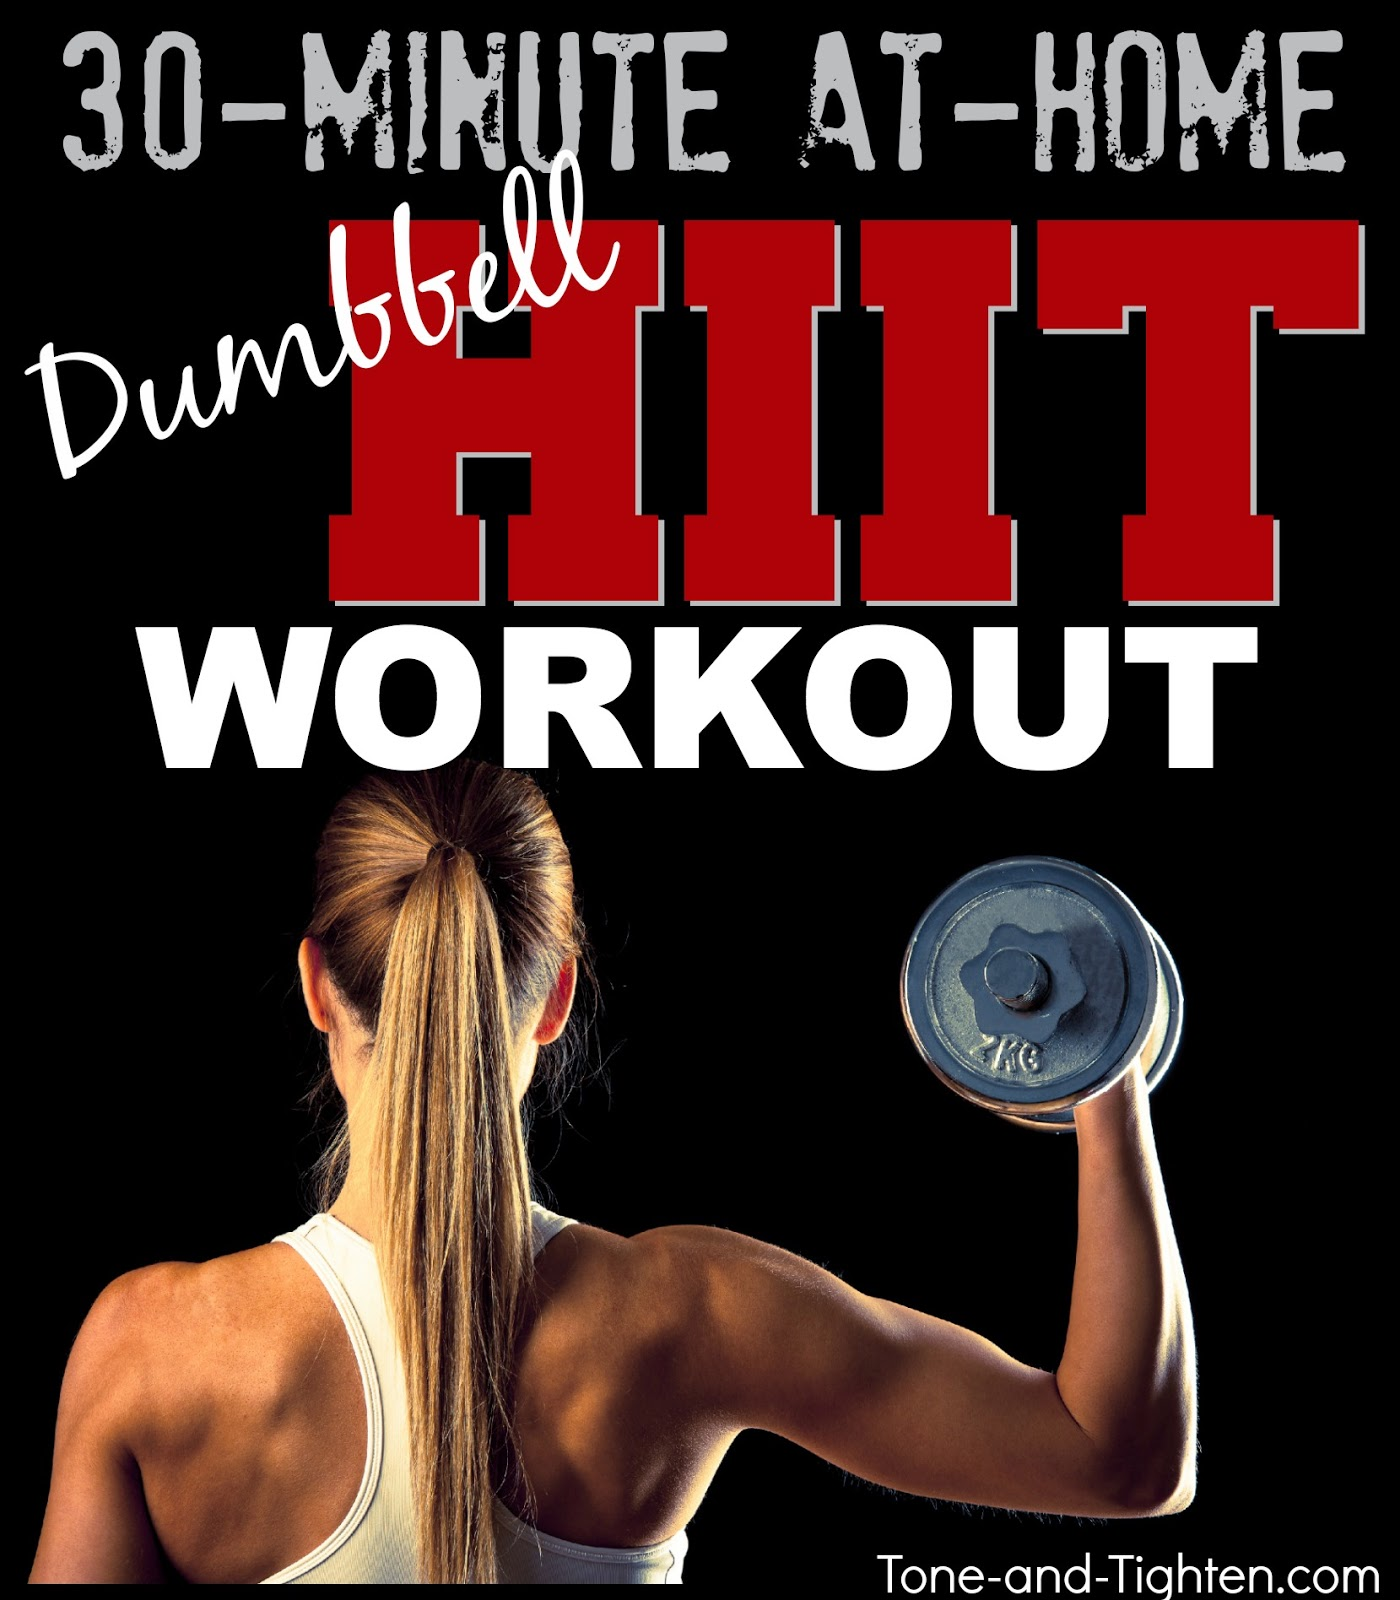 30 Minute Hiit Workout With Dumbbells Tone And Tighten Workouts Tagged Circuit Full Body Hight Intensity Interval Weights At Home Dumbbell